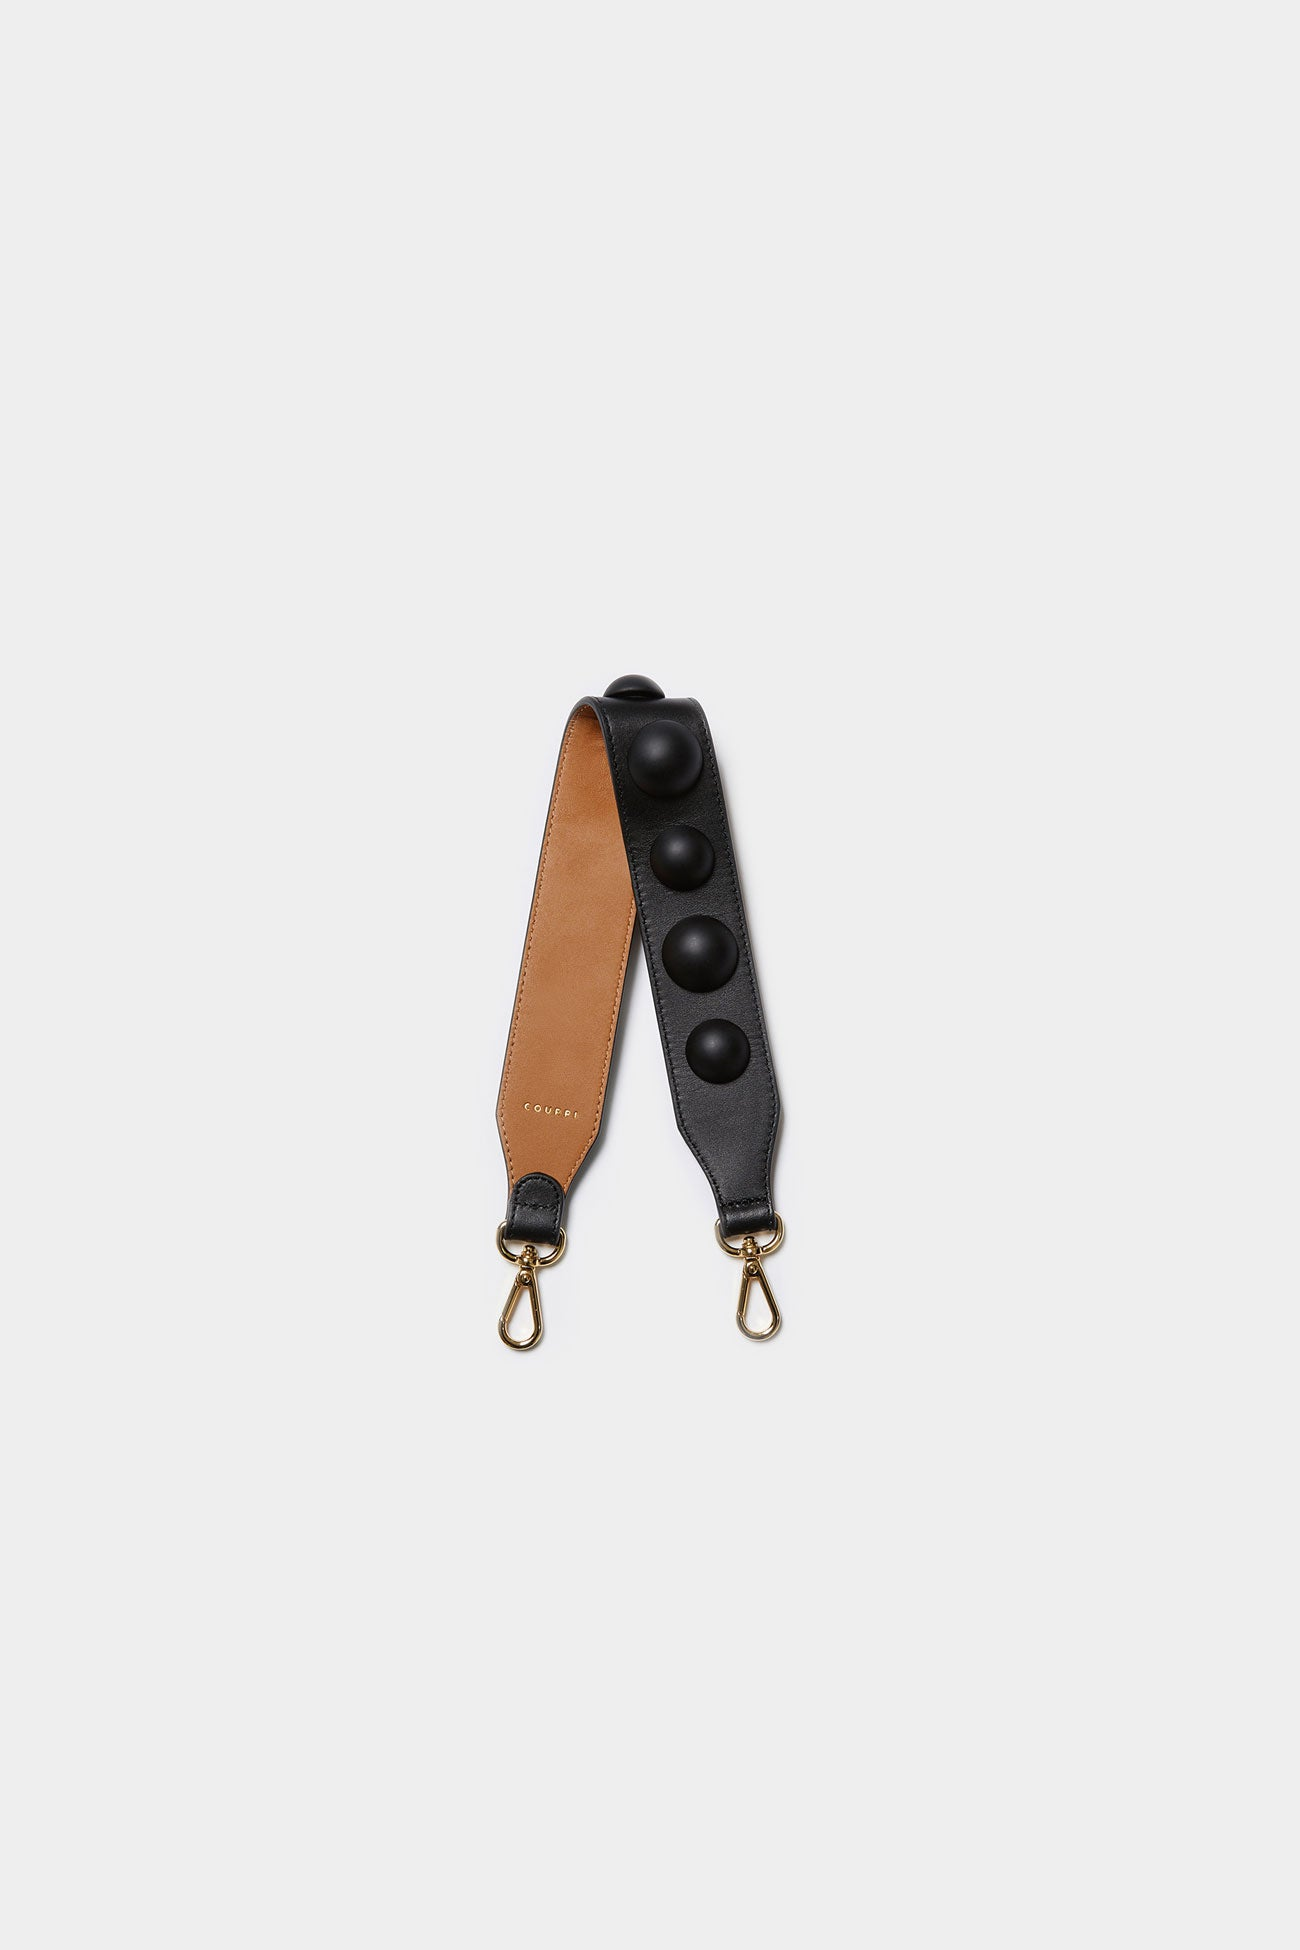 BLACK CODIE EMBELLISHED LEATHER STRAP [Short]